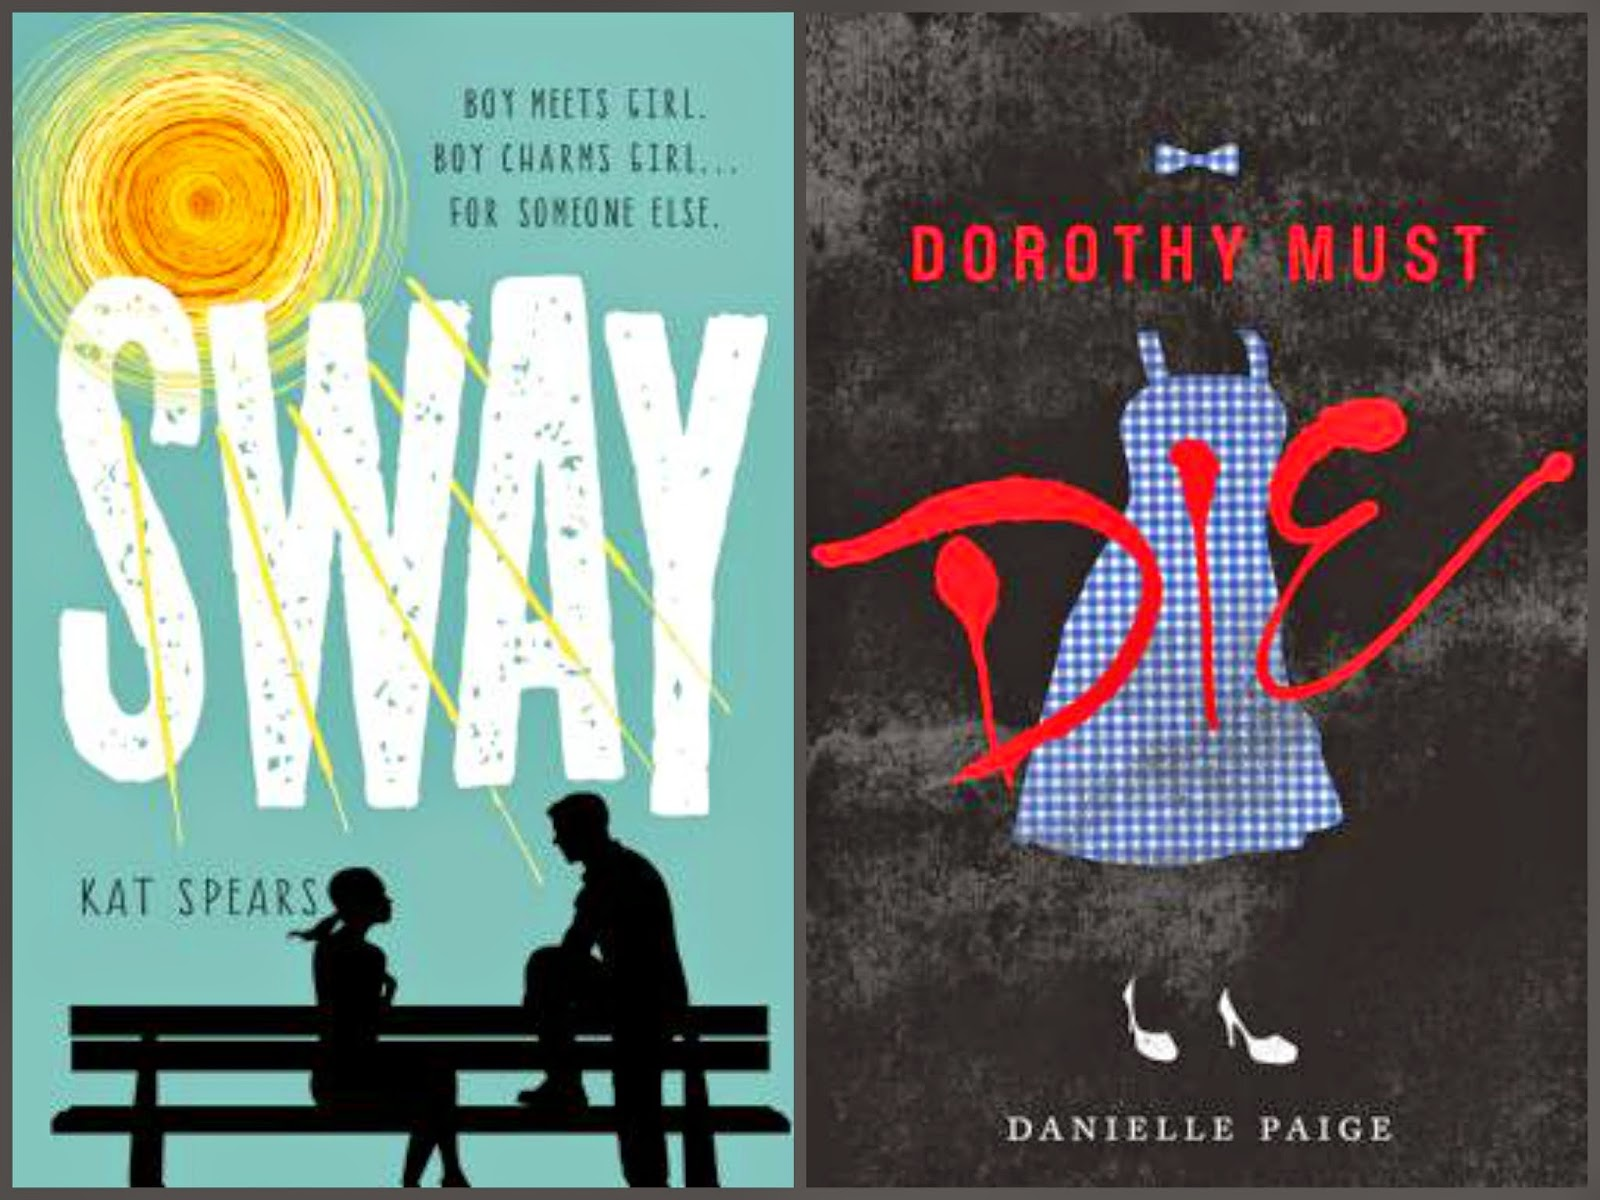 Sway by Kat Spears; Dorothy Must Die by Danielle Paige